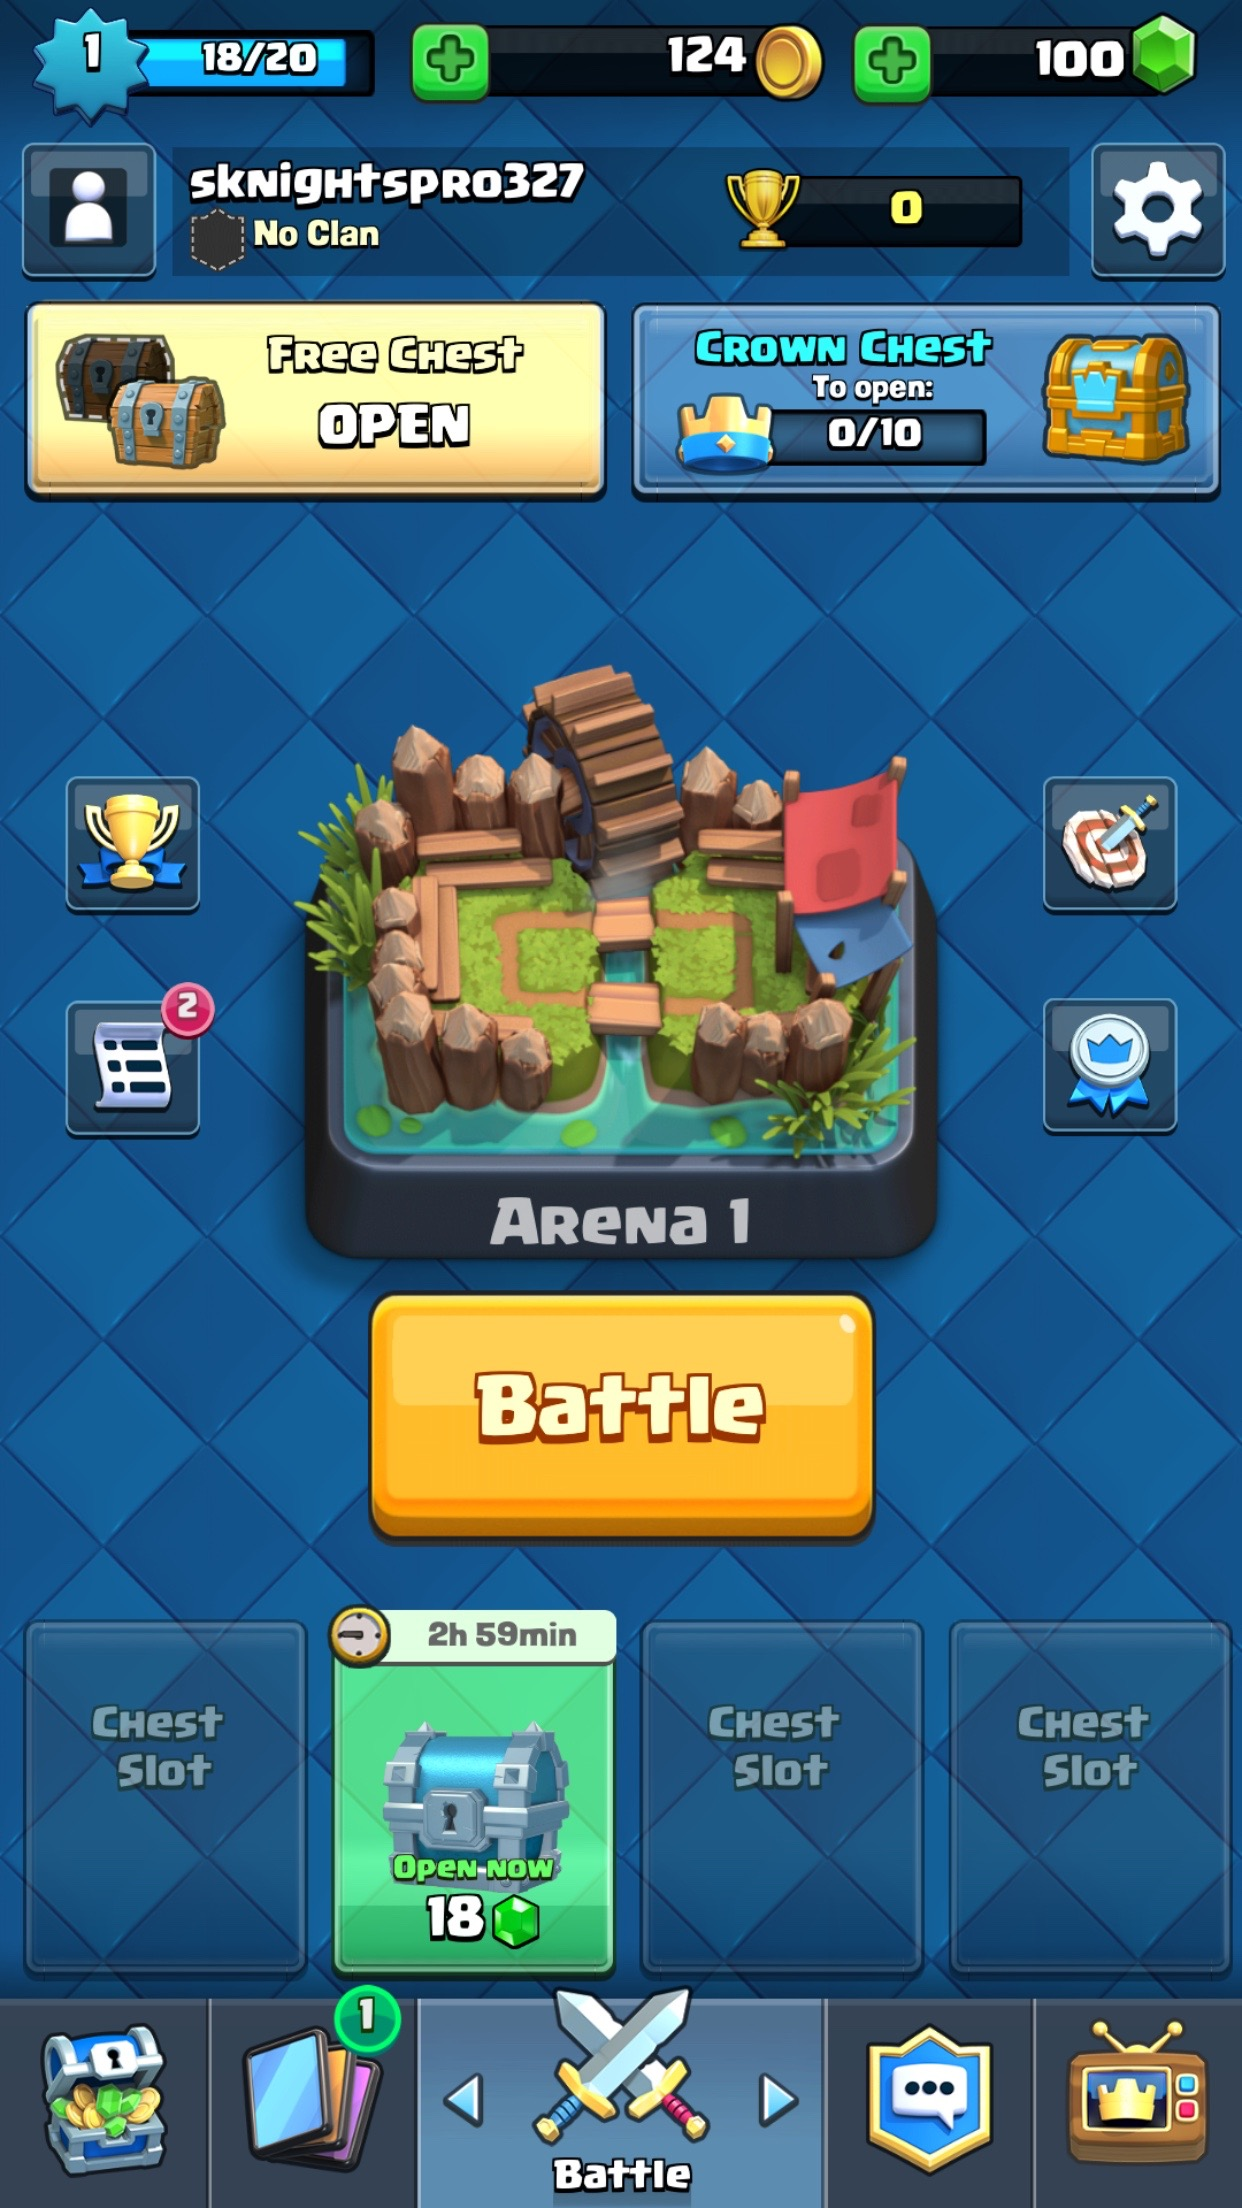 Crown chests and free chests keep players interested after their first loss